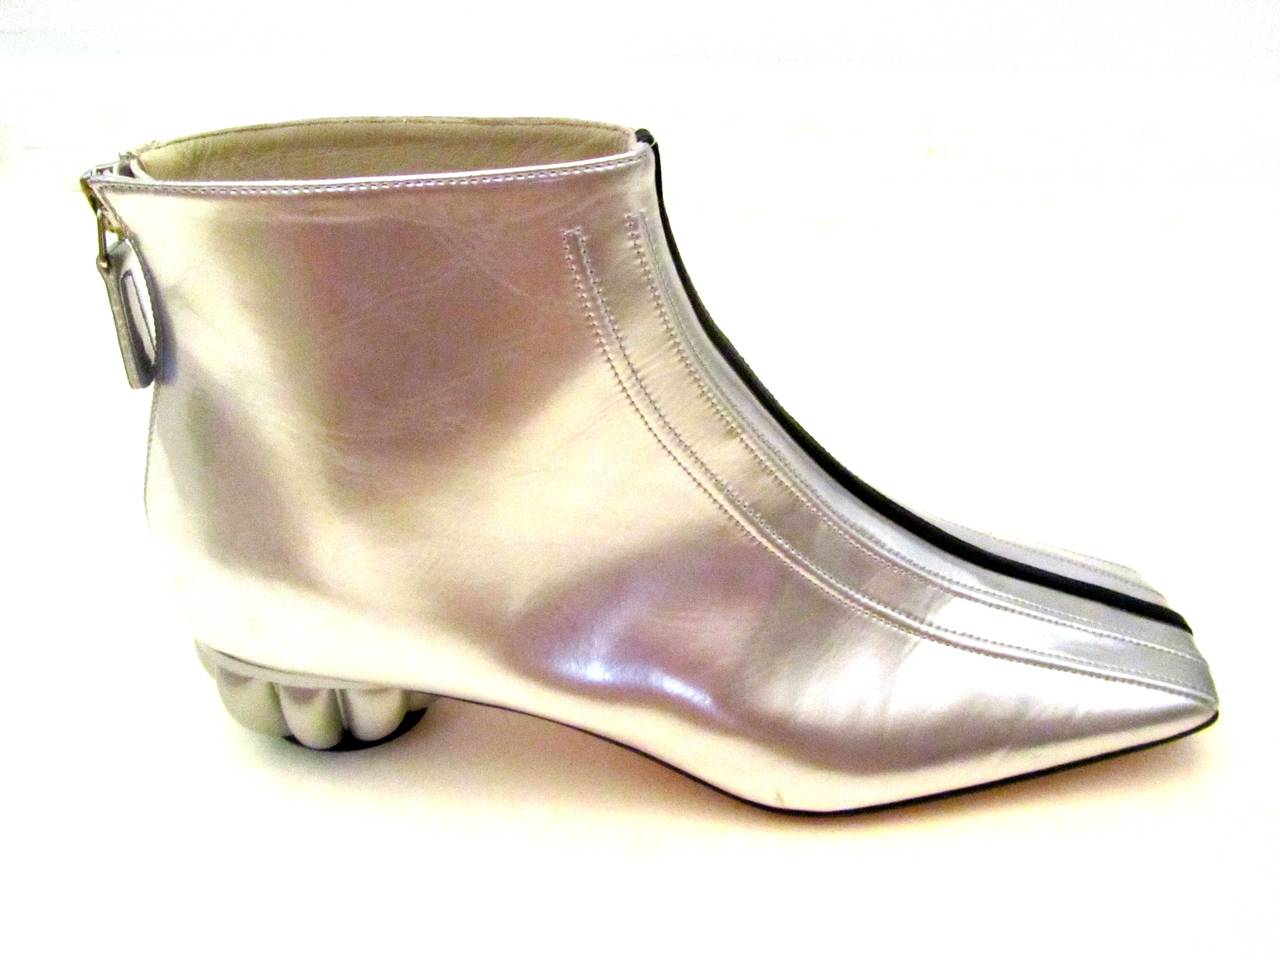 Chanel Boots - Patent Leather - Silver with Black Stripe - Size 37.5 3